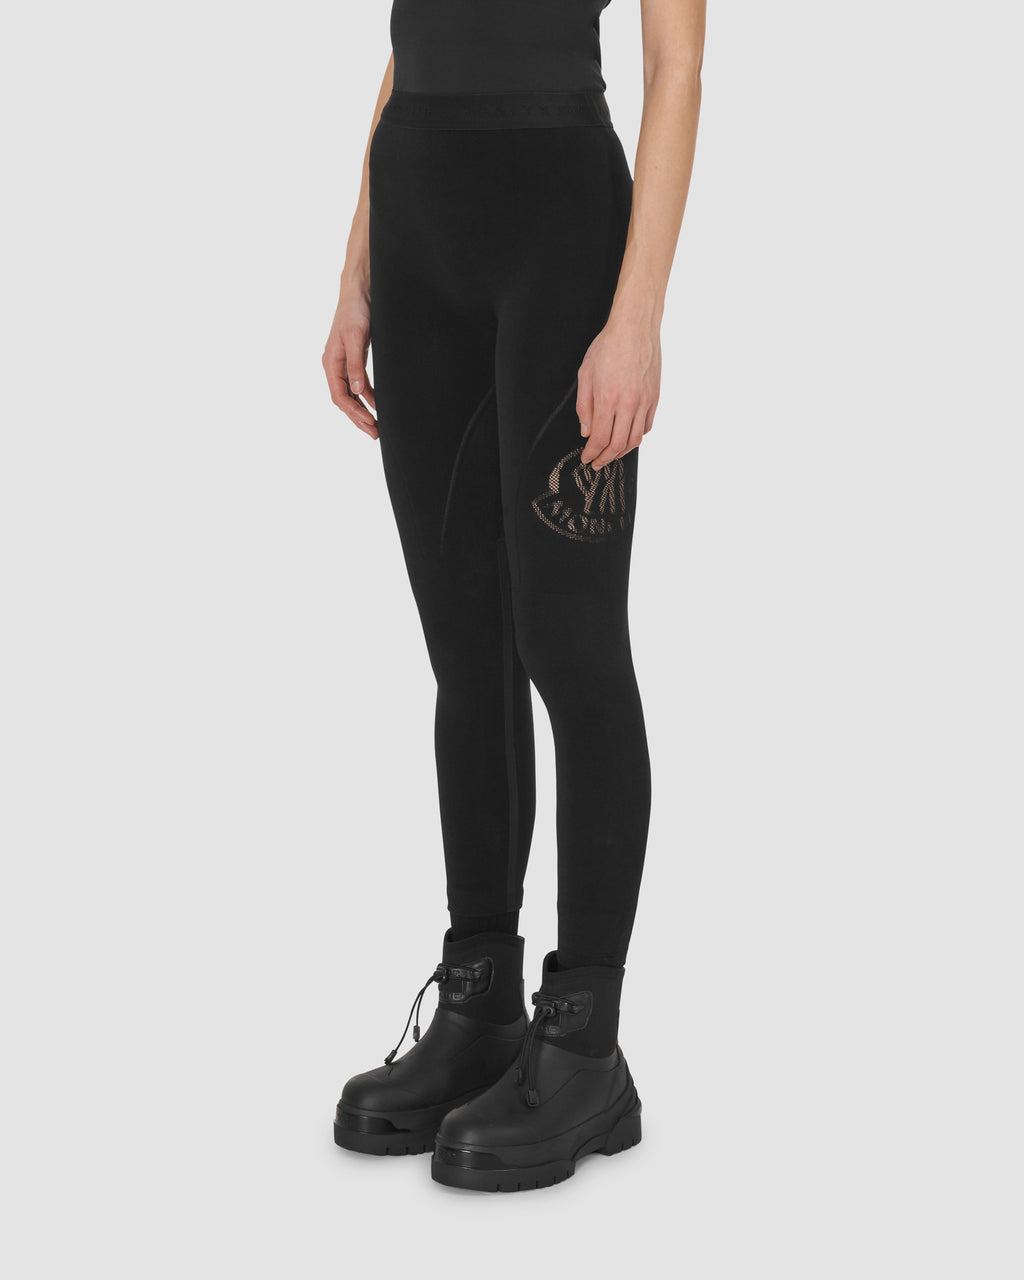 1017 ALYX 9SM | MONCLER LEGGINGS | PANTS | BLACK, Google Shopping, Moncler, PANTS, S20, WOMEN